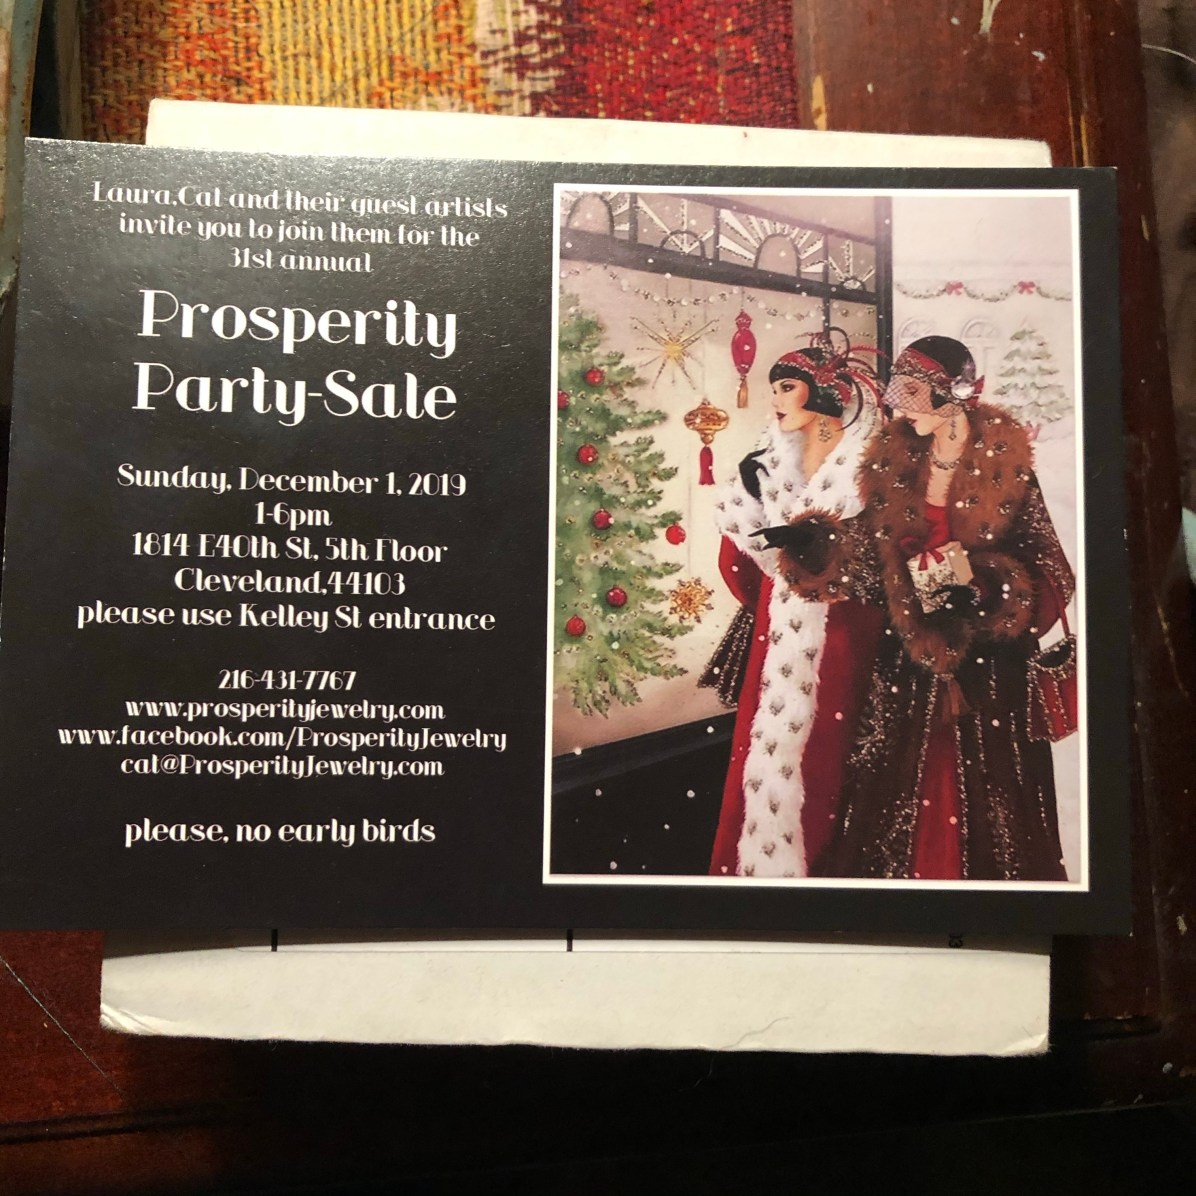 Visit us at our friend's studio party and sale... lots of great art, live music, great food and libation. Plus you have to meet Kat and Laura, the hostesses and studio owners.